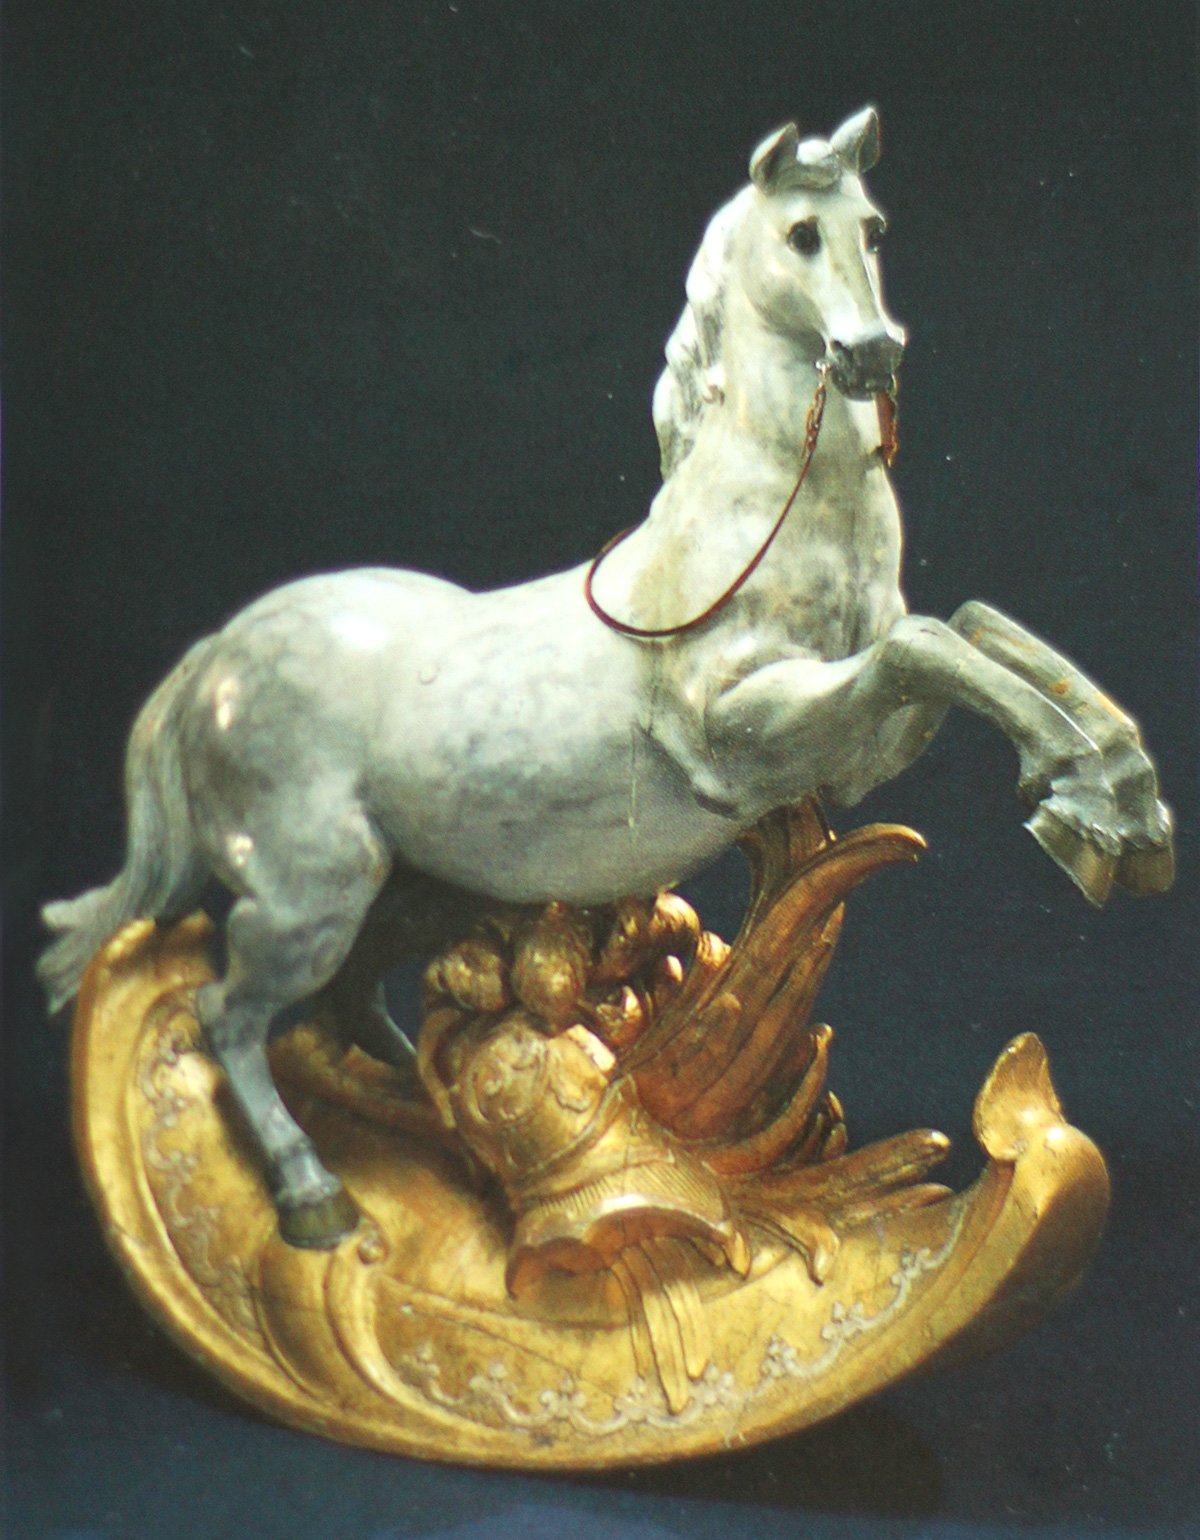 Лошадка Густава III, короля Швеци Horse, belonging to the Swedish King Gustavus III as a boy